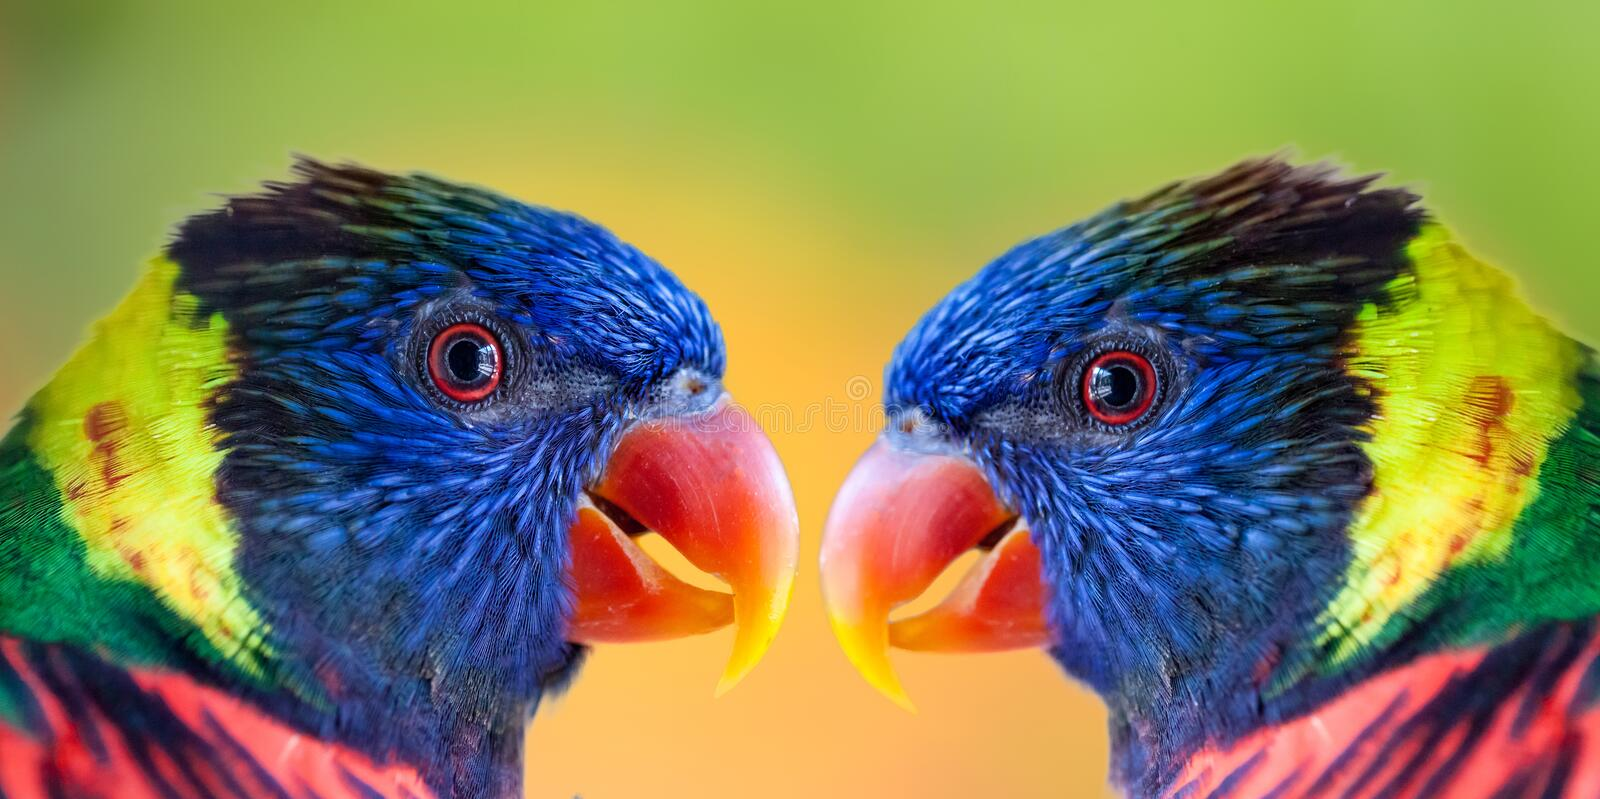 Parrot. Close up shot of two colourful parrots